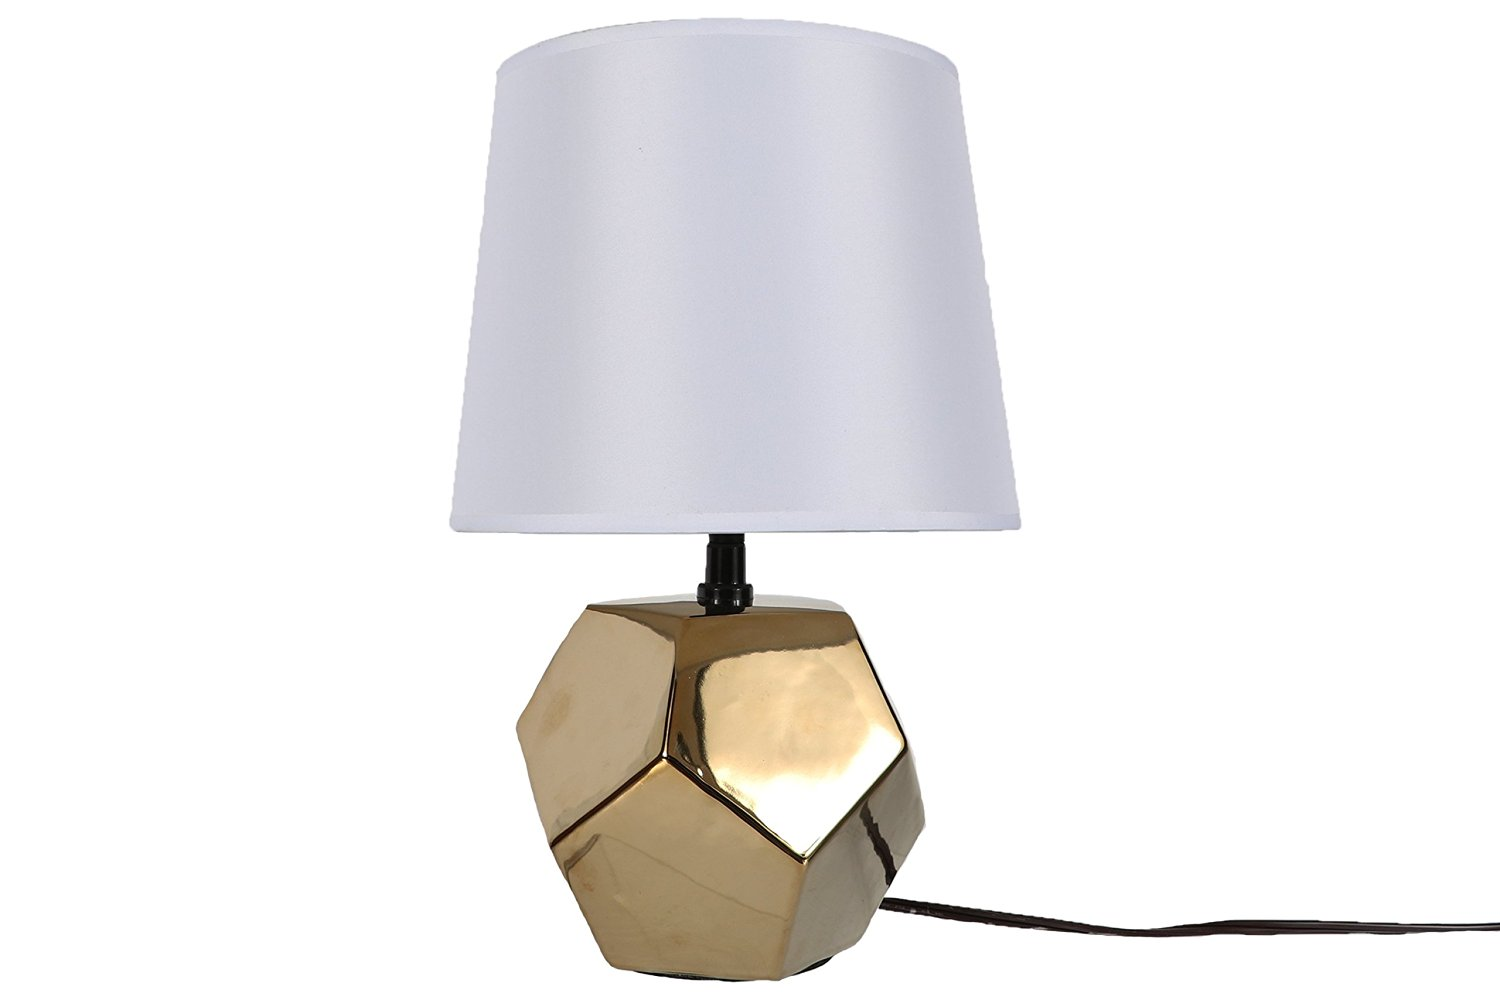 DEI Gold Faceted Diamond Base Lamp Round